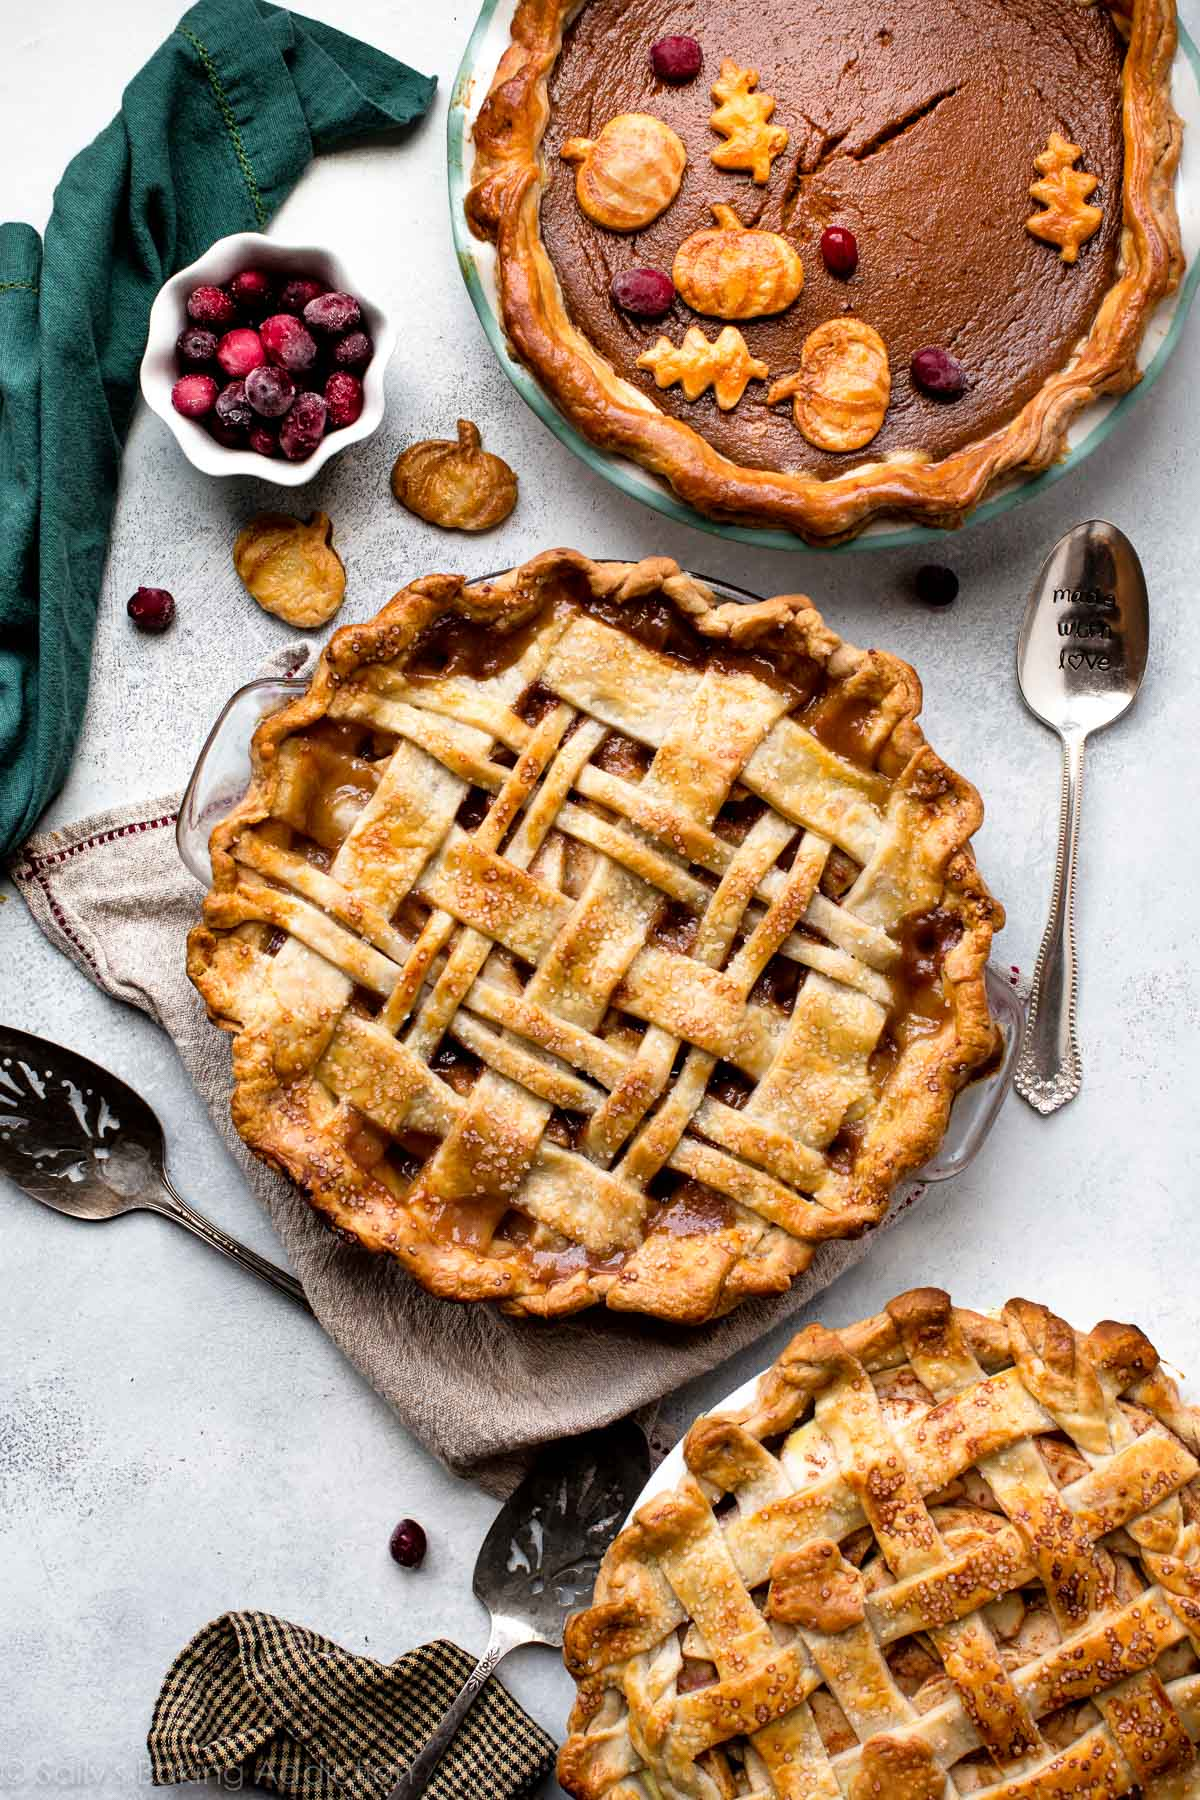 Pies with jam as an ornament of any festive table